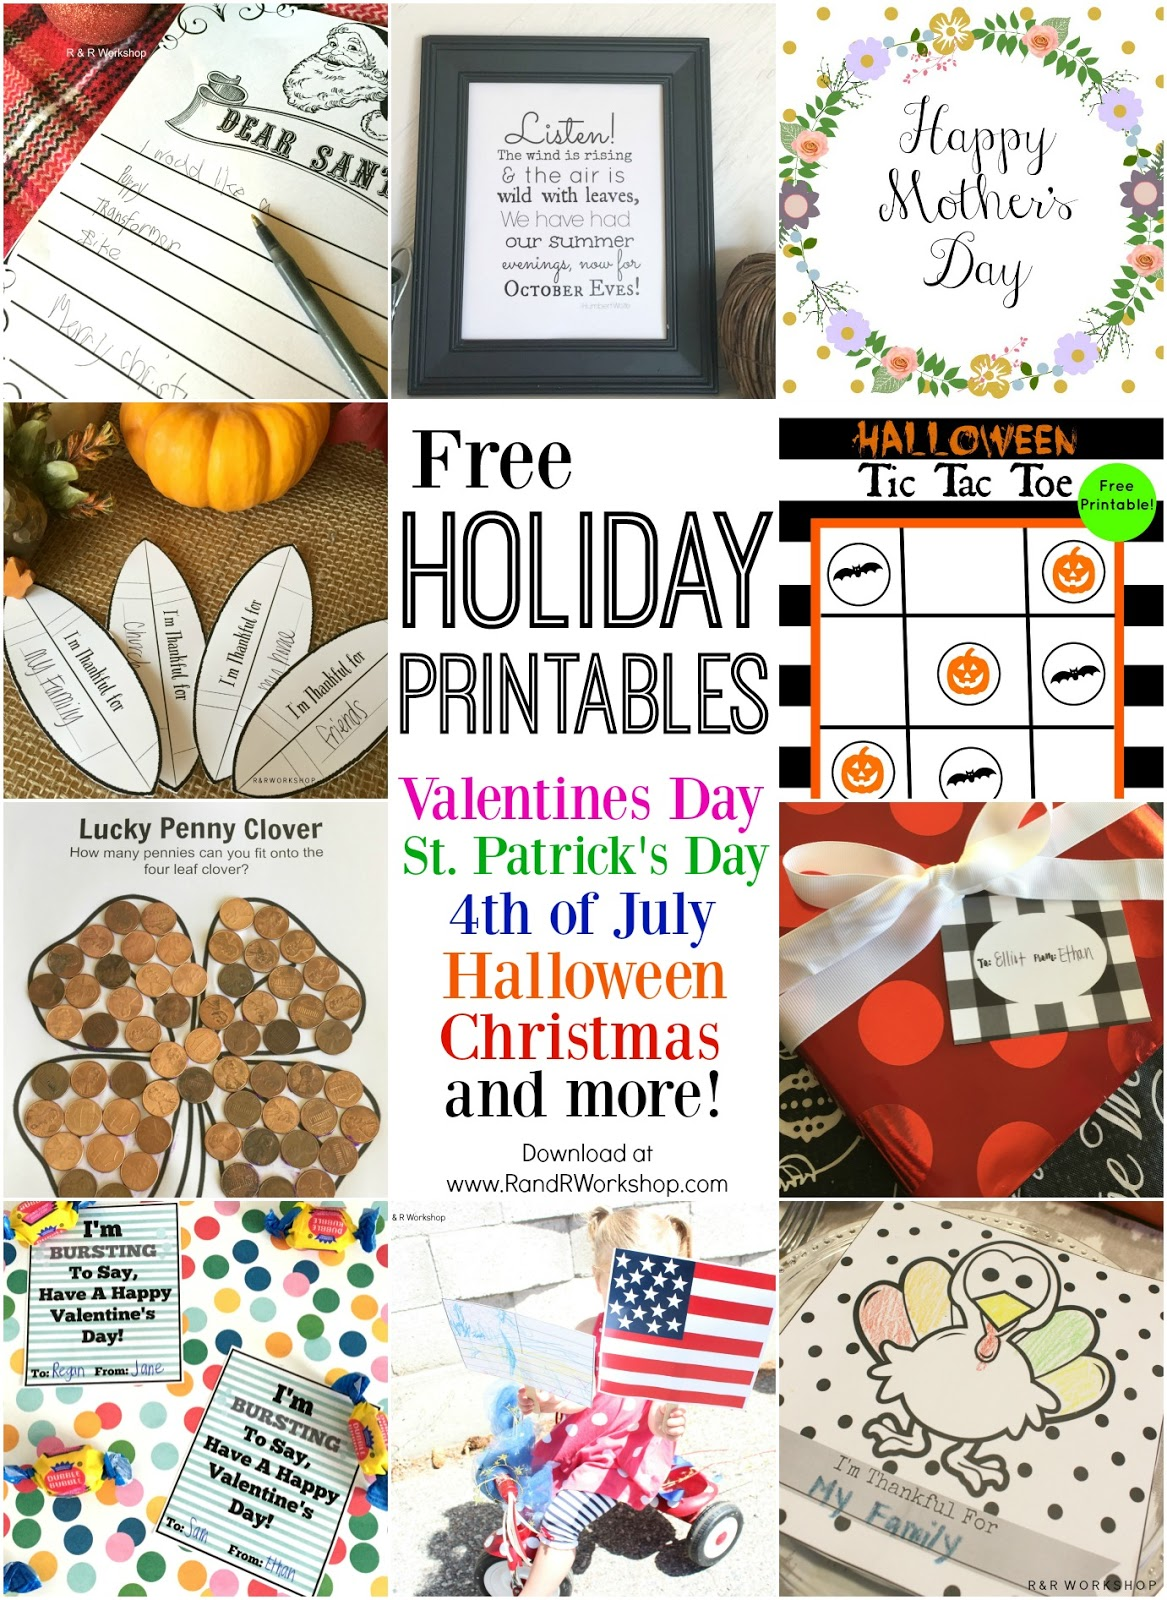 each year i post the top posts from the past year but since i had a lot more printables for this year i decided to do a top 20 holiday printables - Free Holiday Printables